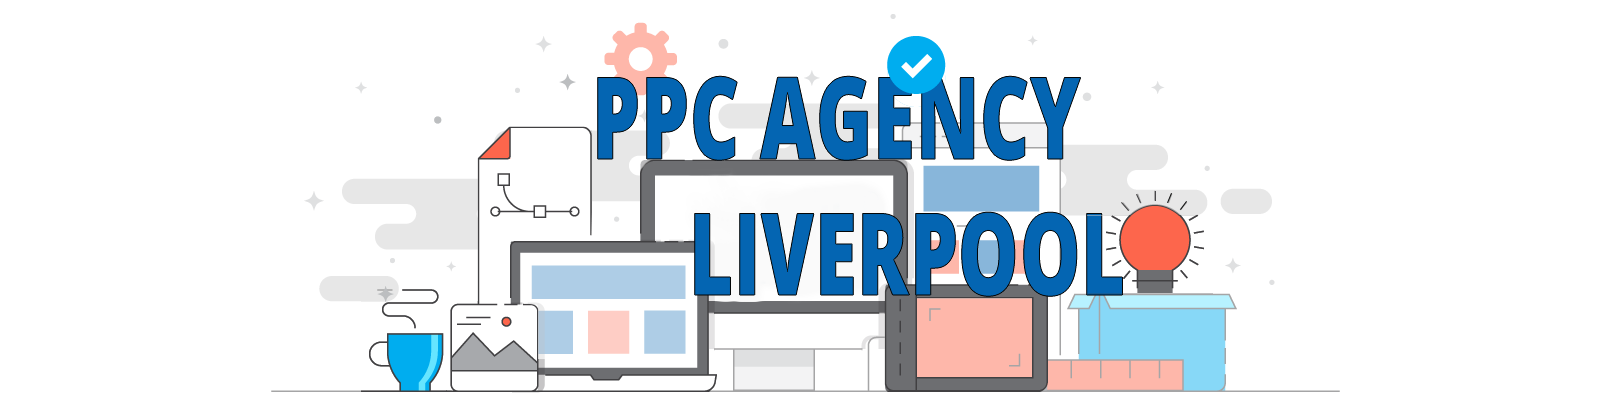 PPC marketing agency in liverpool to grow business online